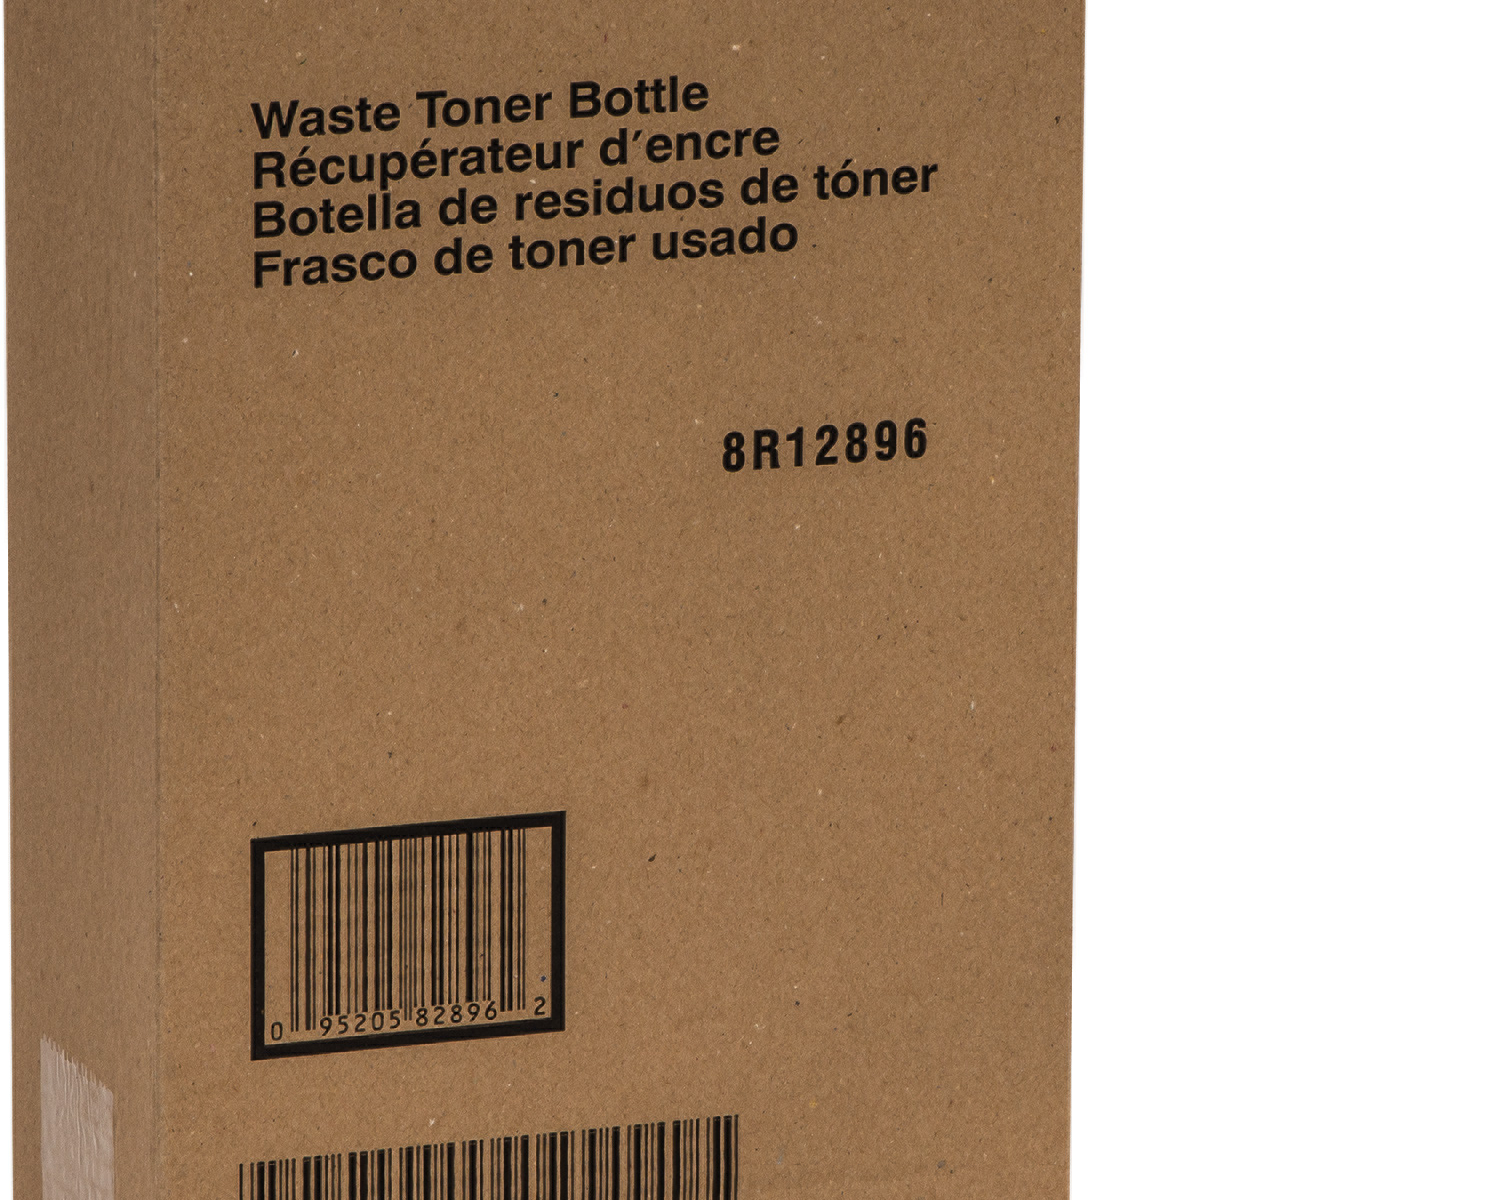 Xerox 008R12896 Toner waste box, 20K pages